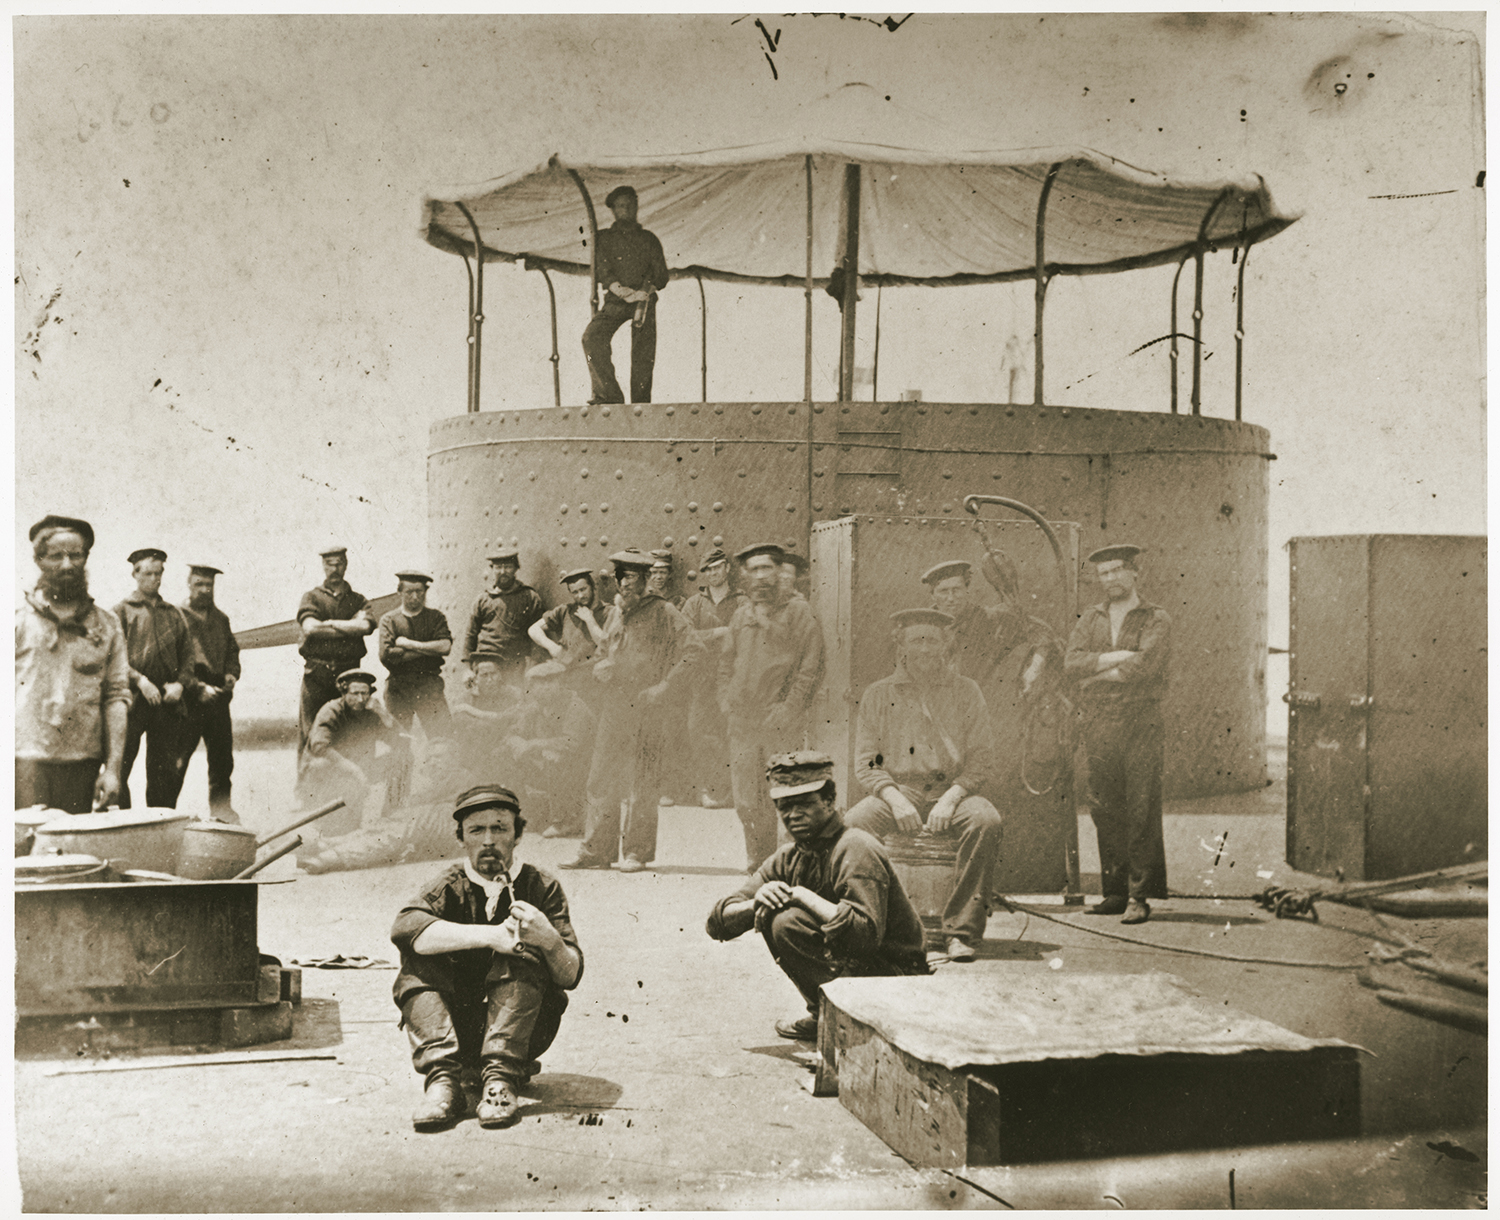 USS <em>Monitor</em> crew cooking on deck, July 9, 1862, by James F. Gibson